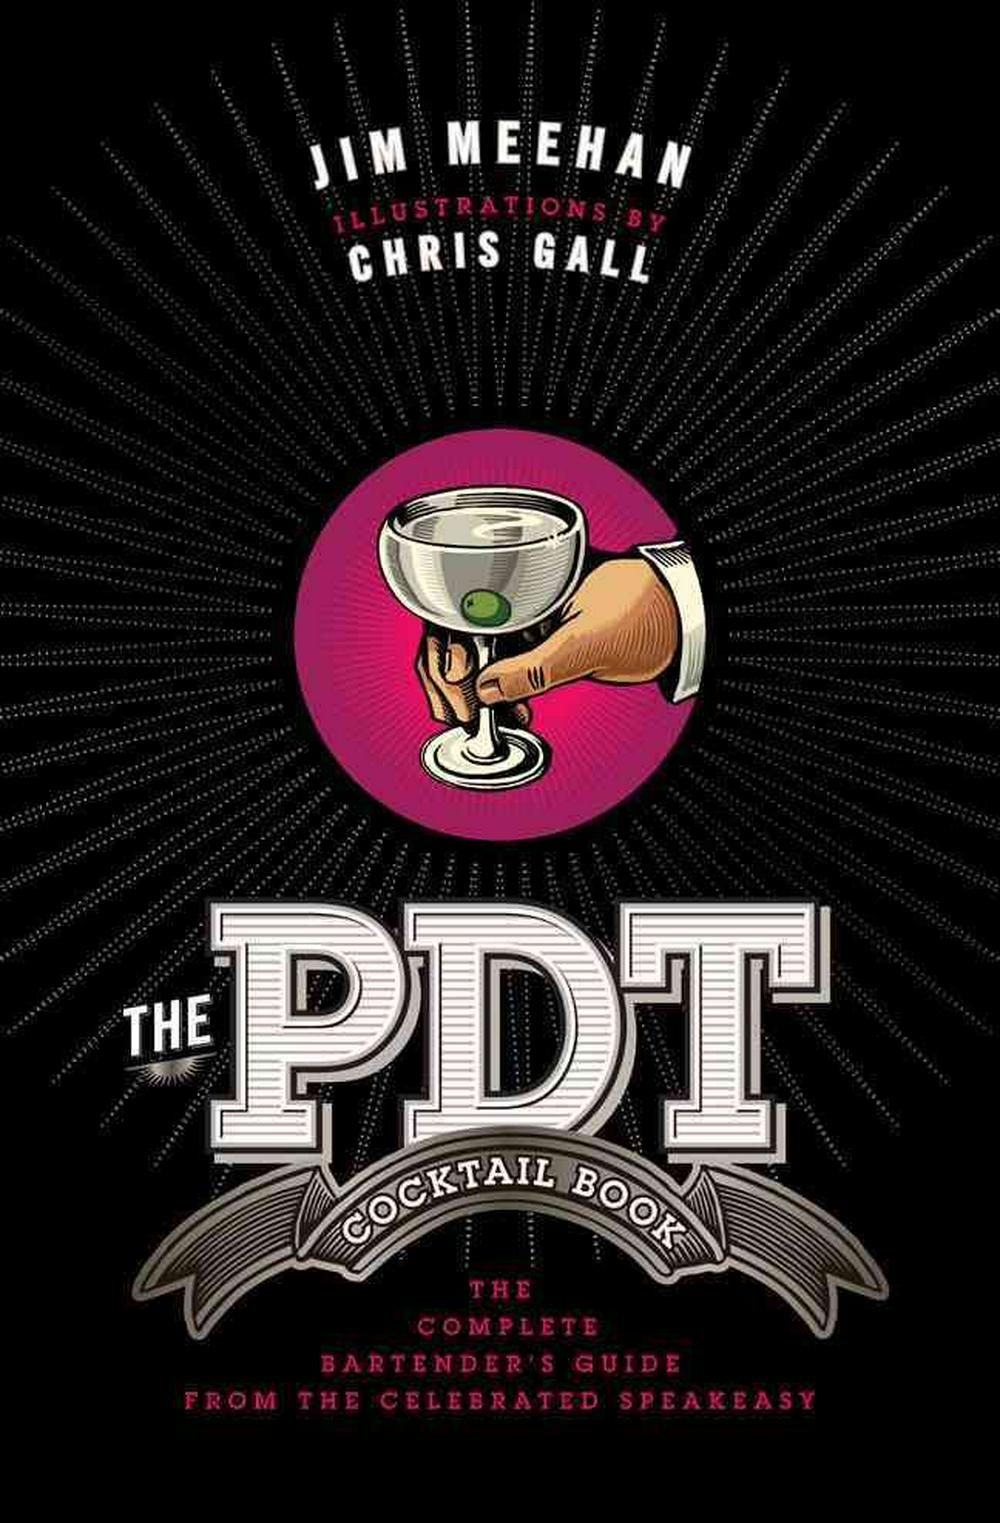 The PDT Cocktail Book by Jim Meehan, ISBN: 9781402779237